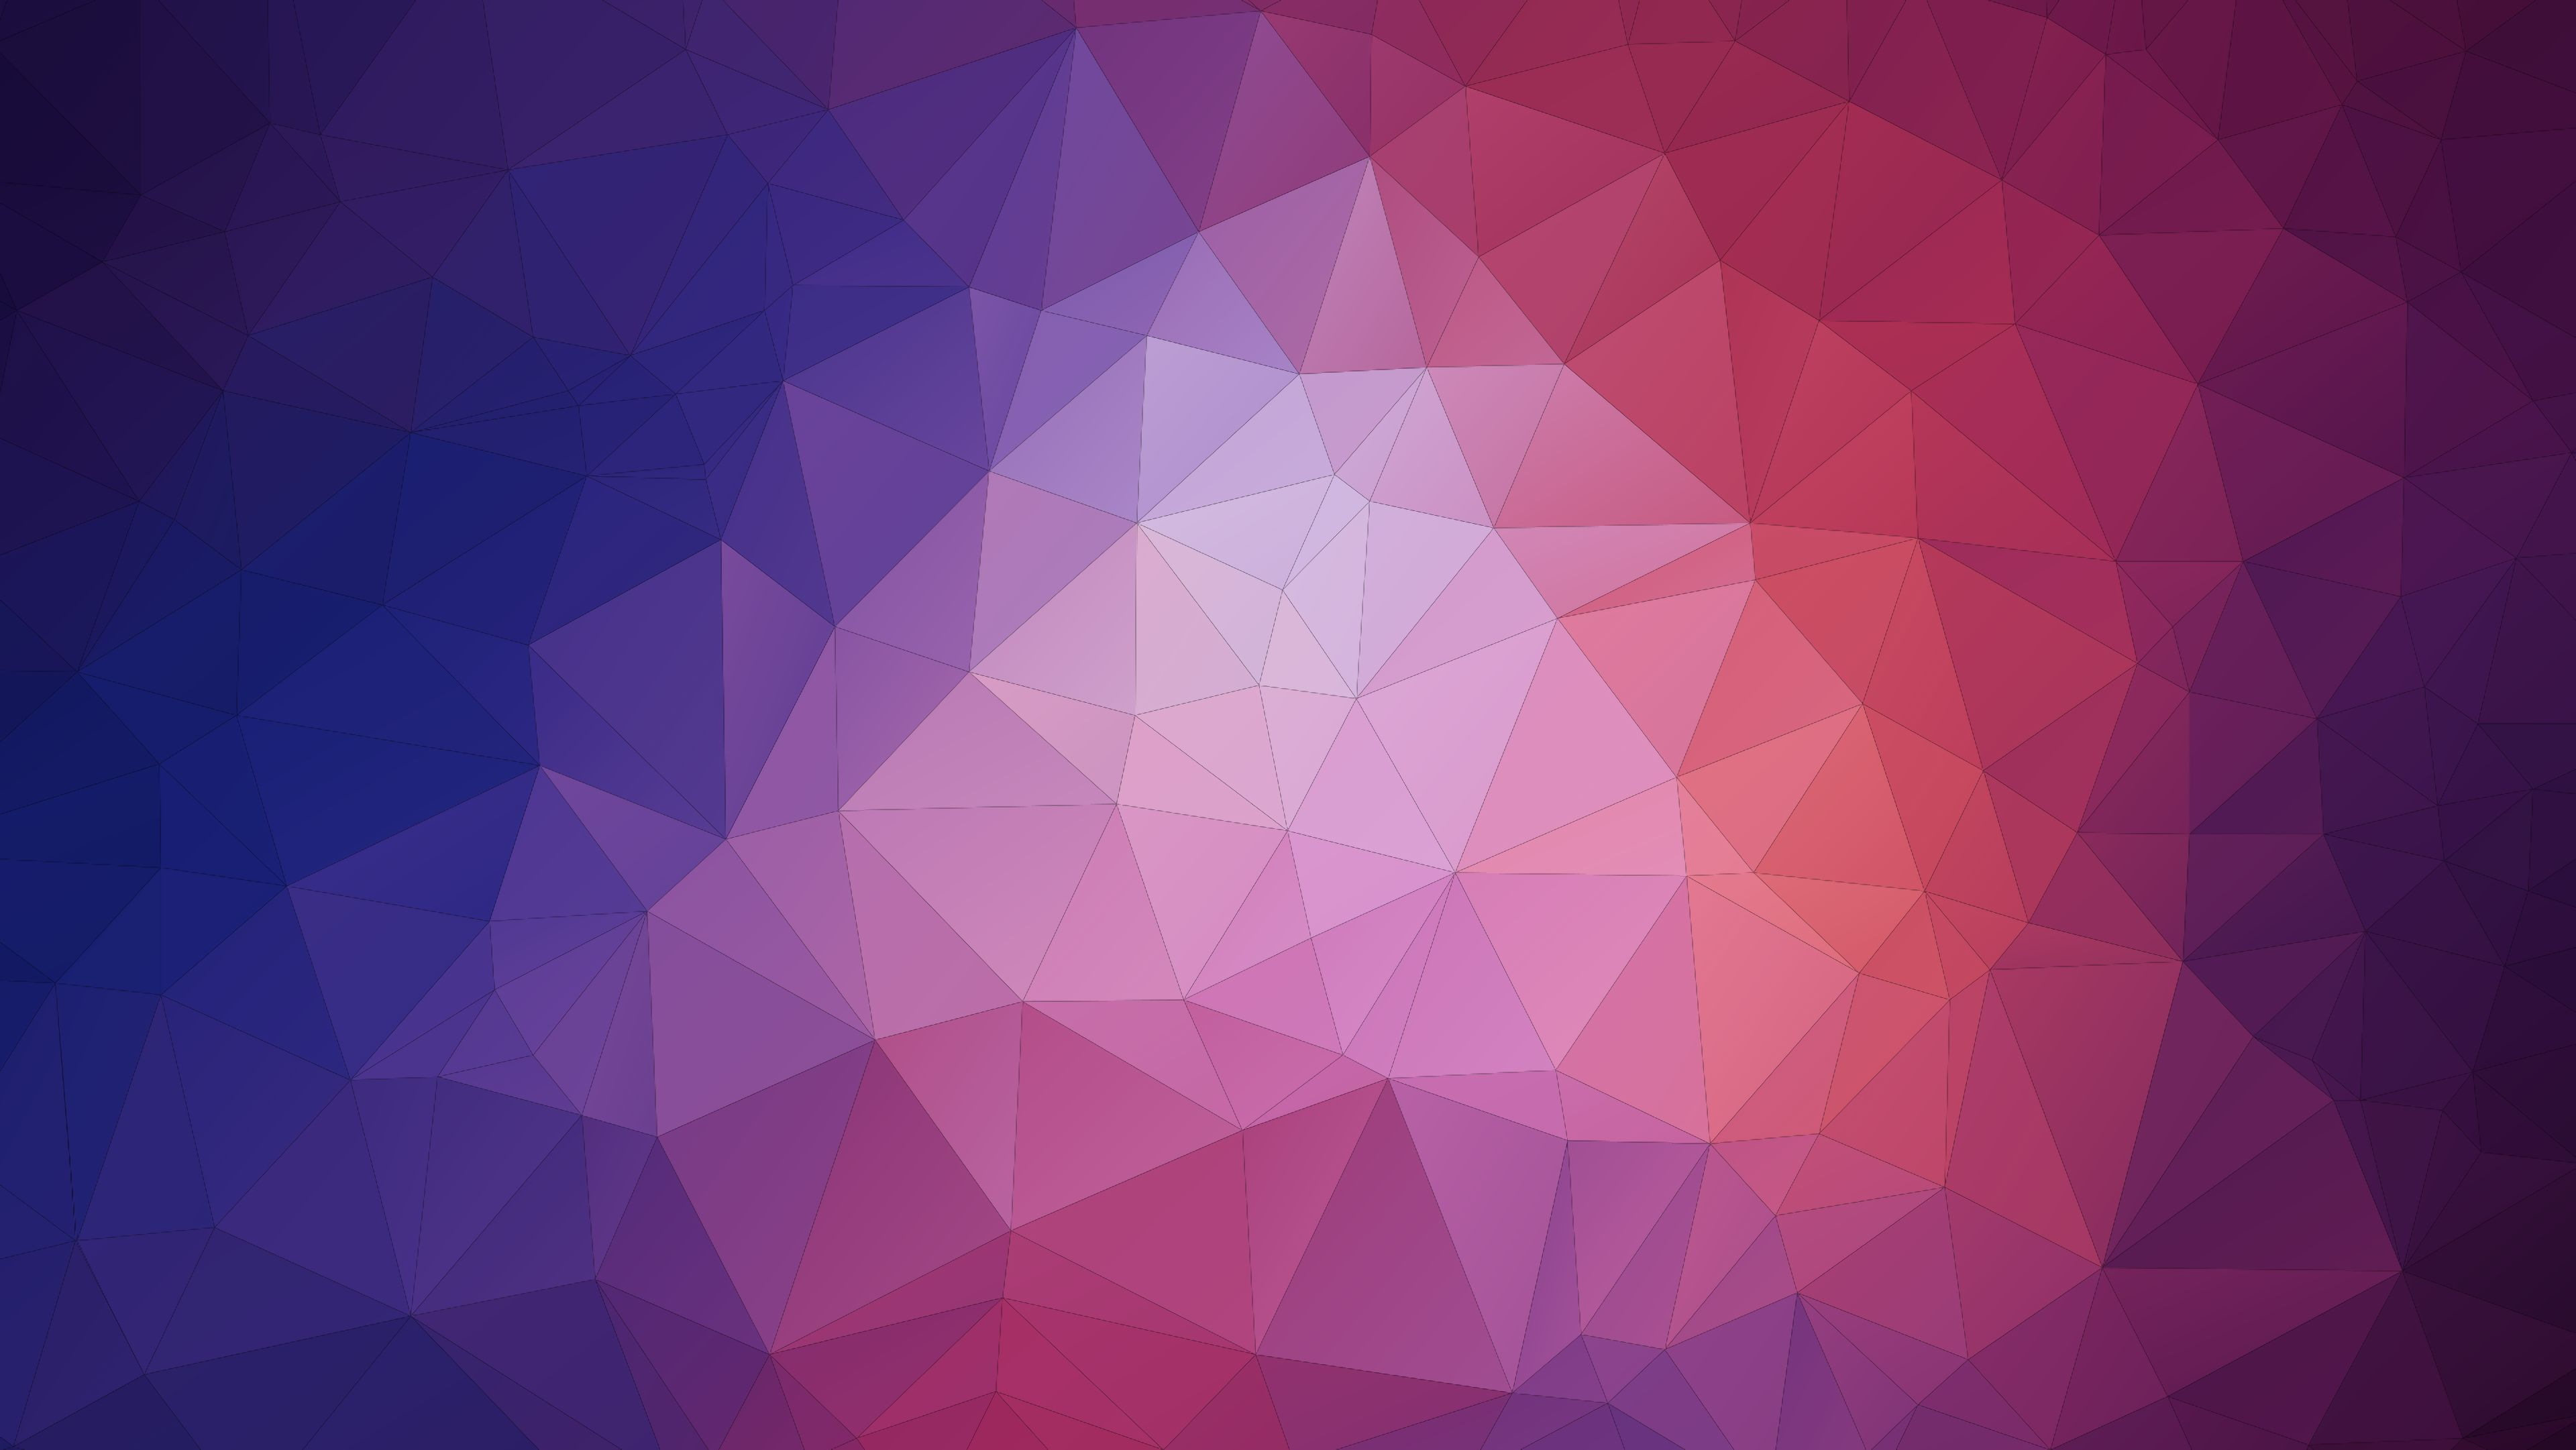 137050 download wallpaper Textures, Texture, Polygon, Triangles, Geometric, Patterns screensavers and pictures for free